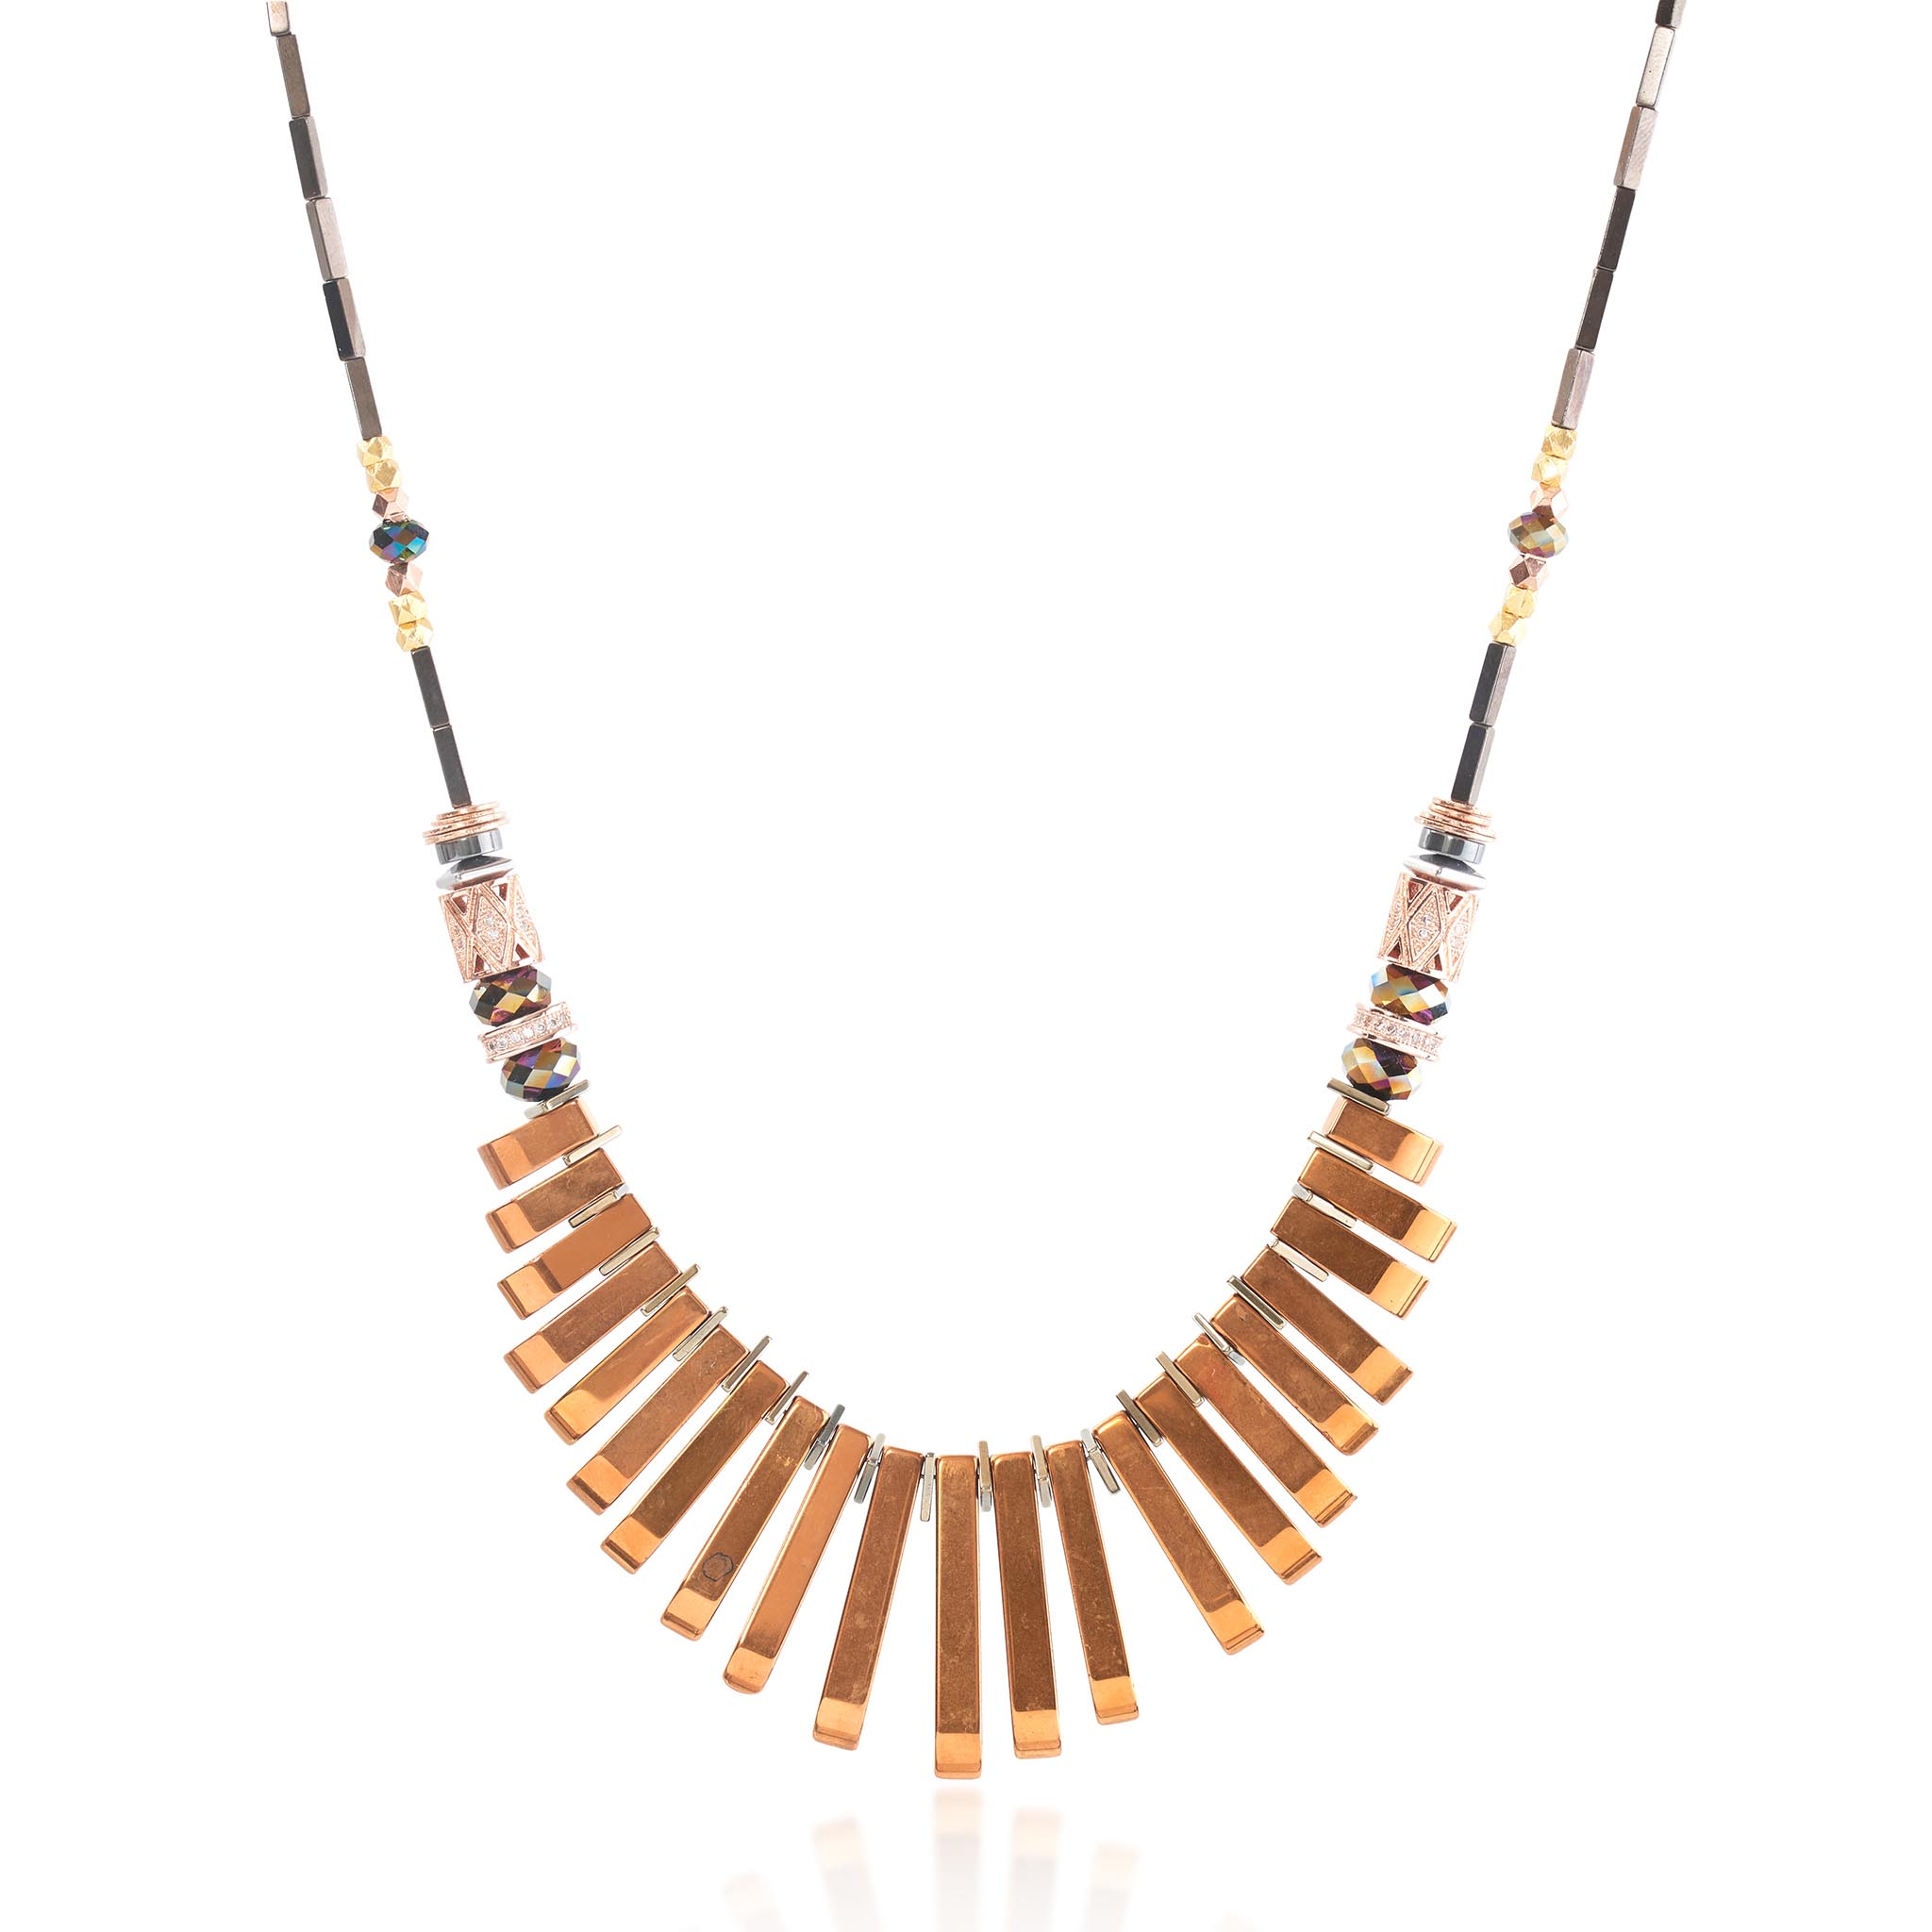 statement product jane maisie s ivy gems fullsizerender blue necklace